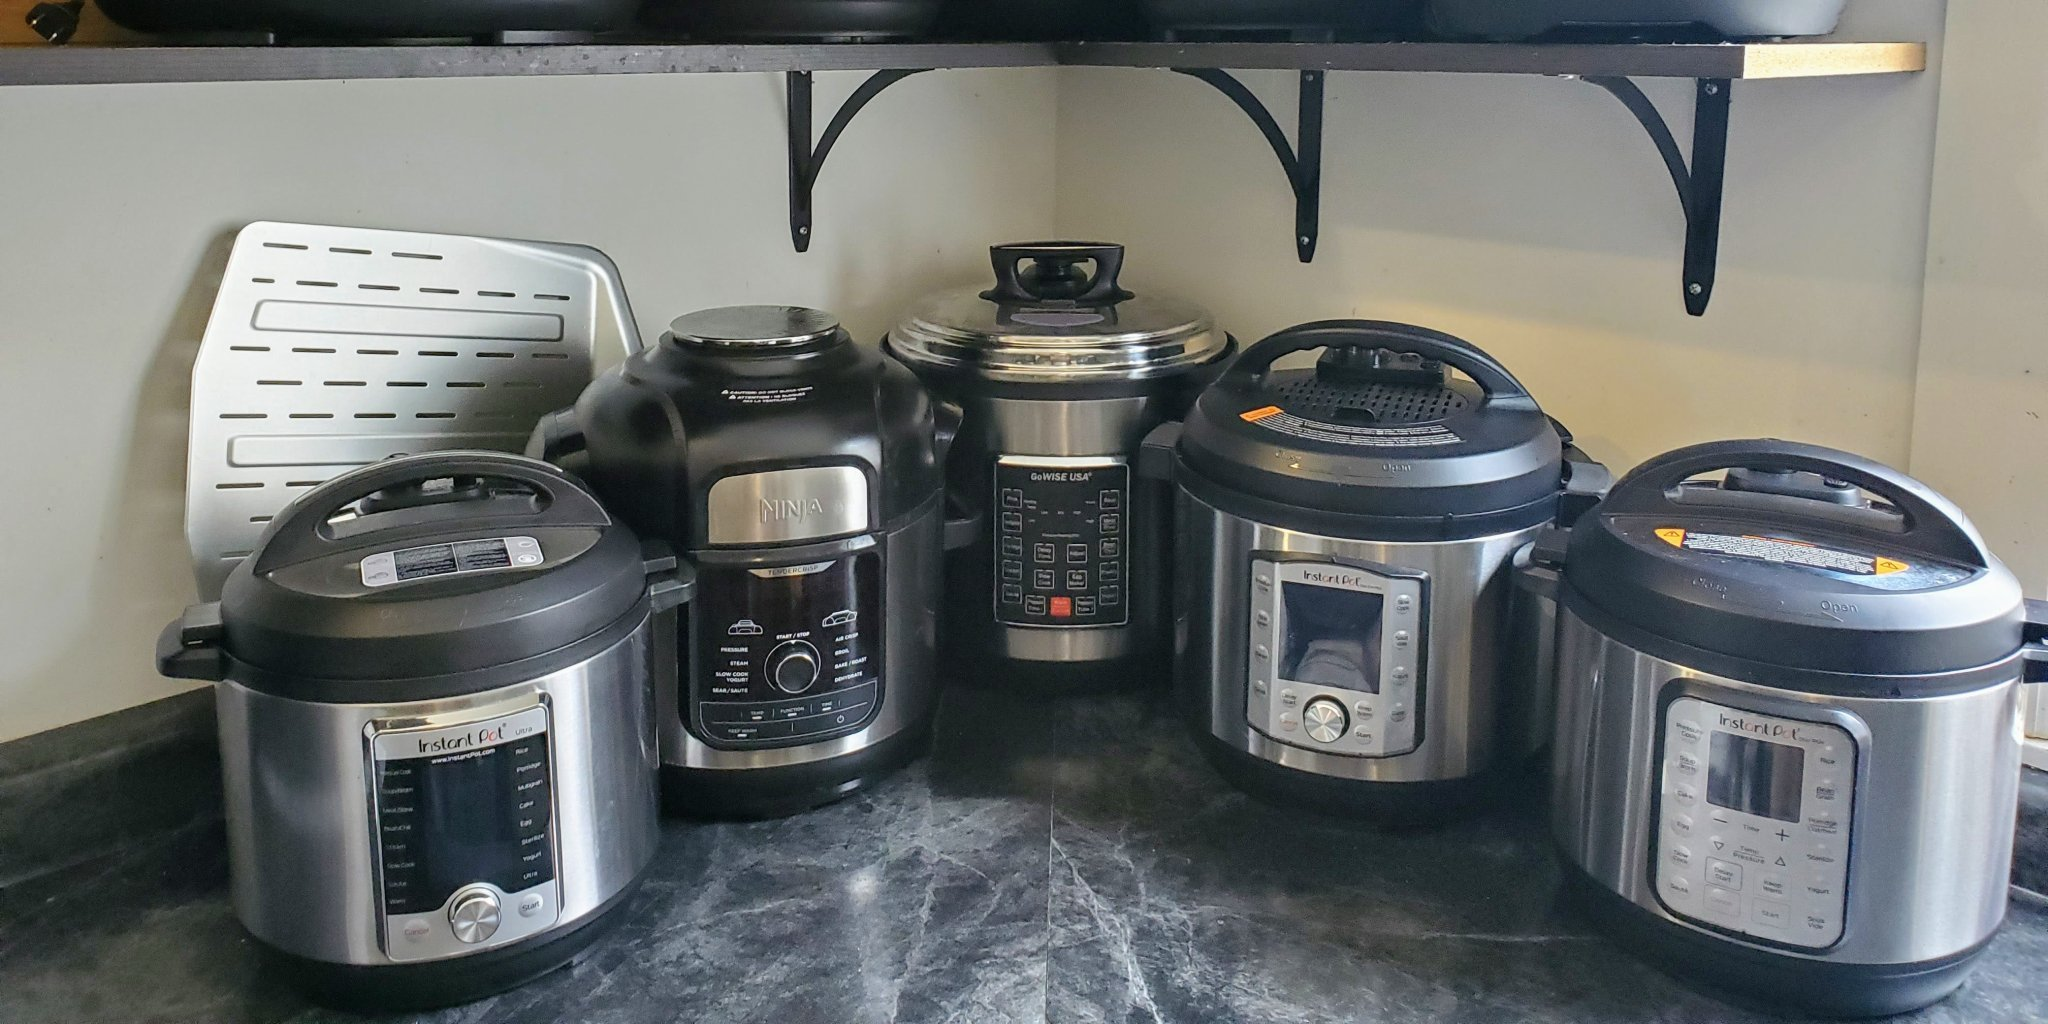 Instant Pots are up to 60% off for Amazon Prime Day — these are some of the lowest prices we've seen